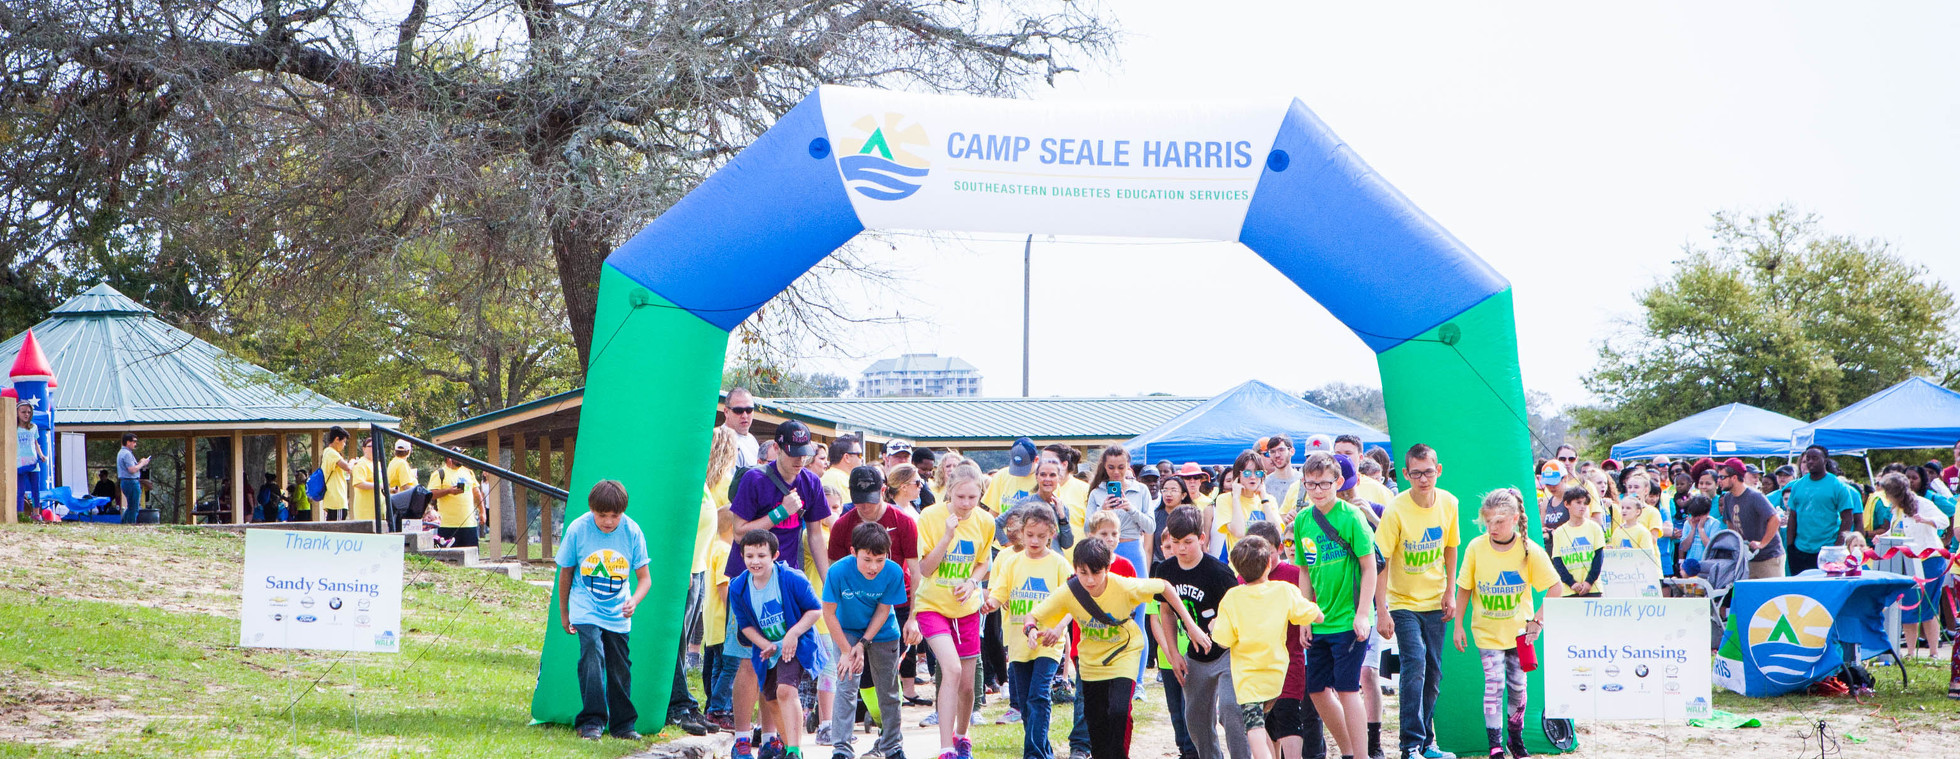 Pensacola Diabetes WALK for Camp Seale Harris